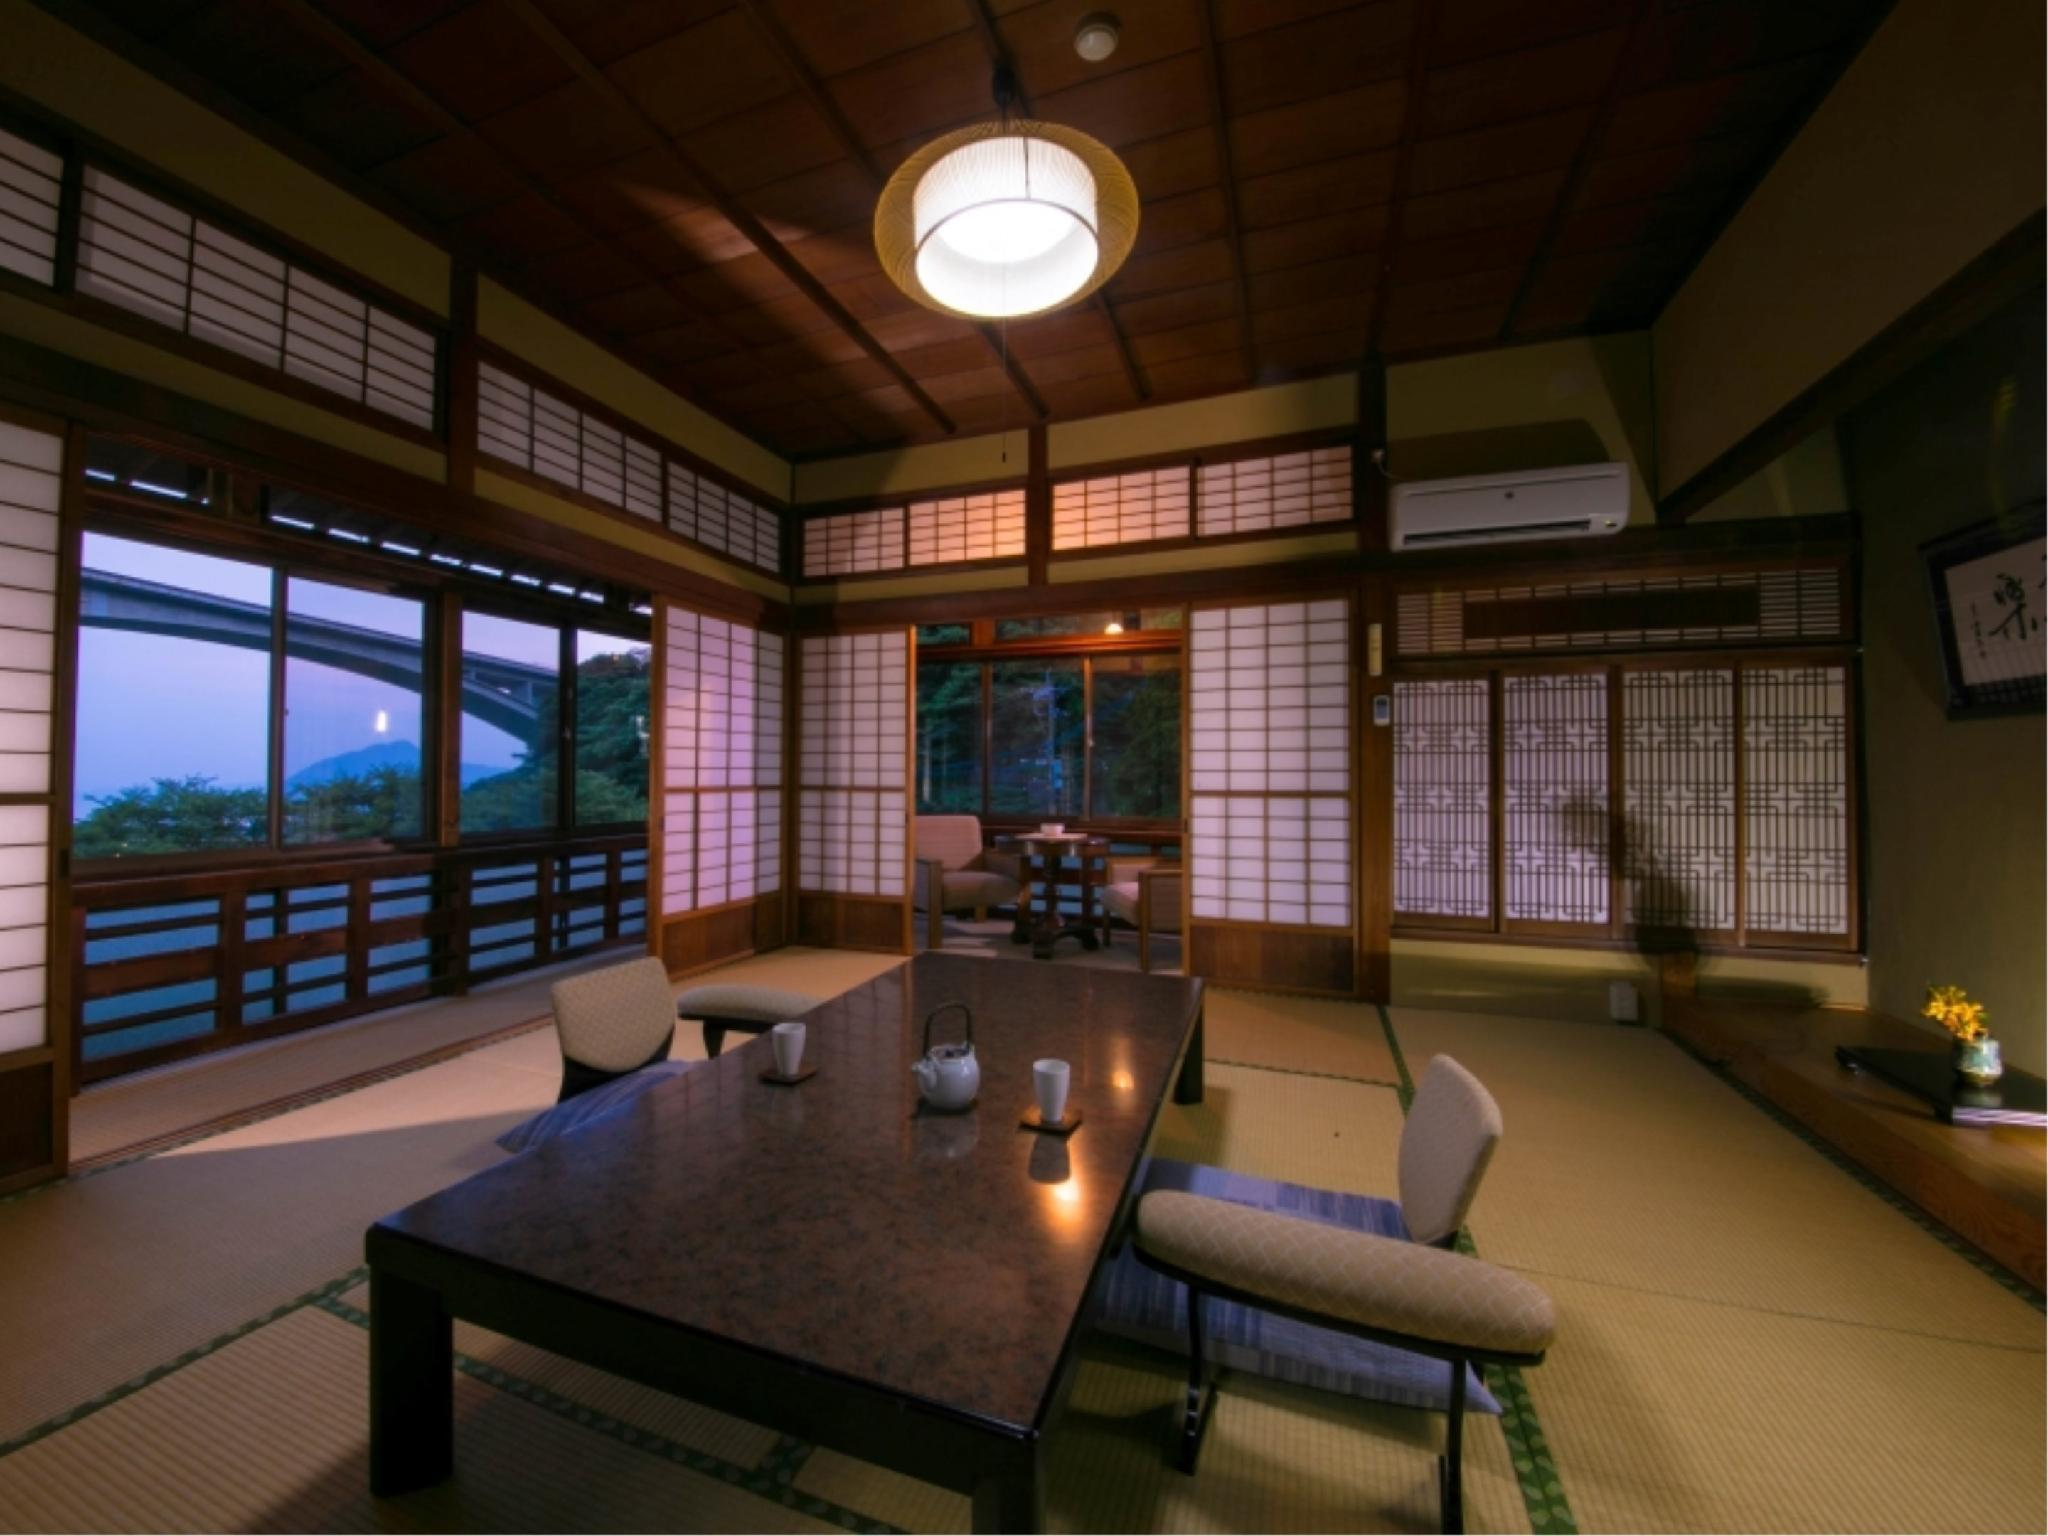 特別房(和式房+溫泉浴室) (Special Japanese-style Room with Hot Spring Bath)